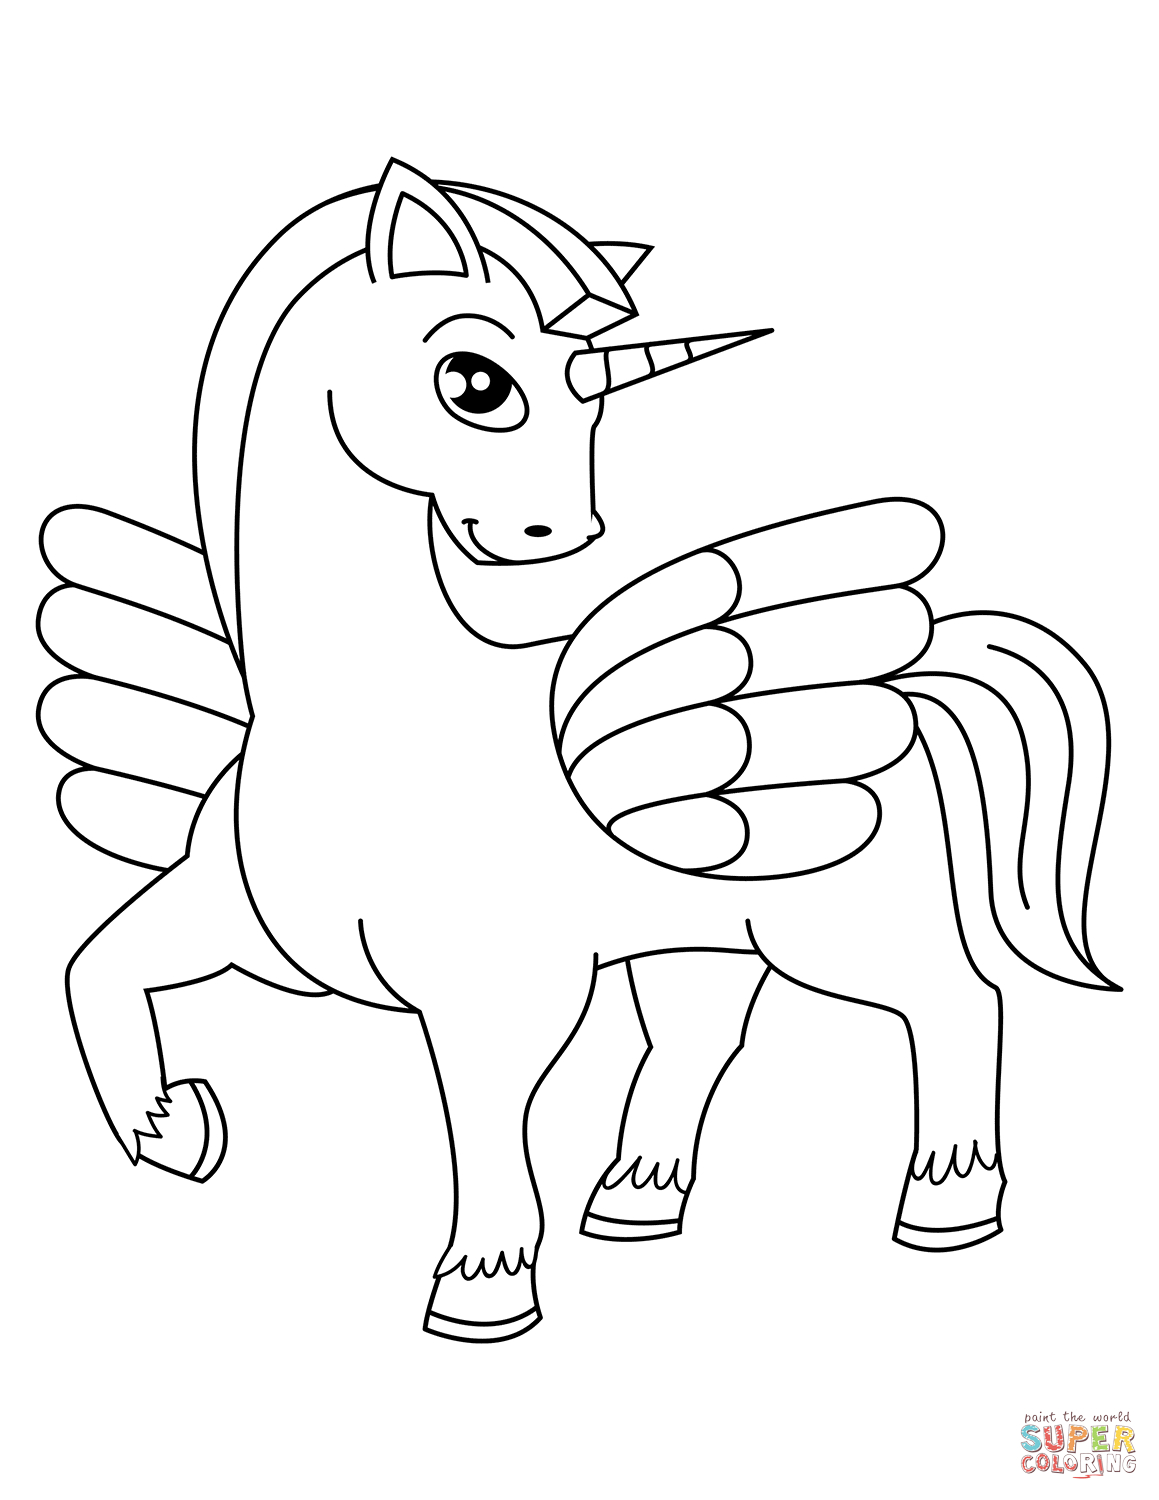 Printable Unicorn Coloring Pages